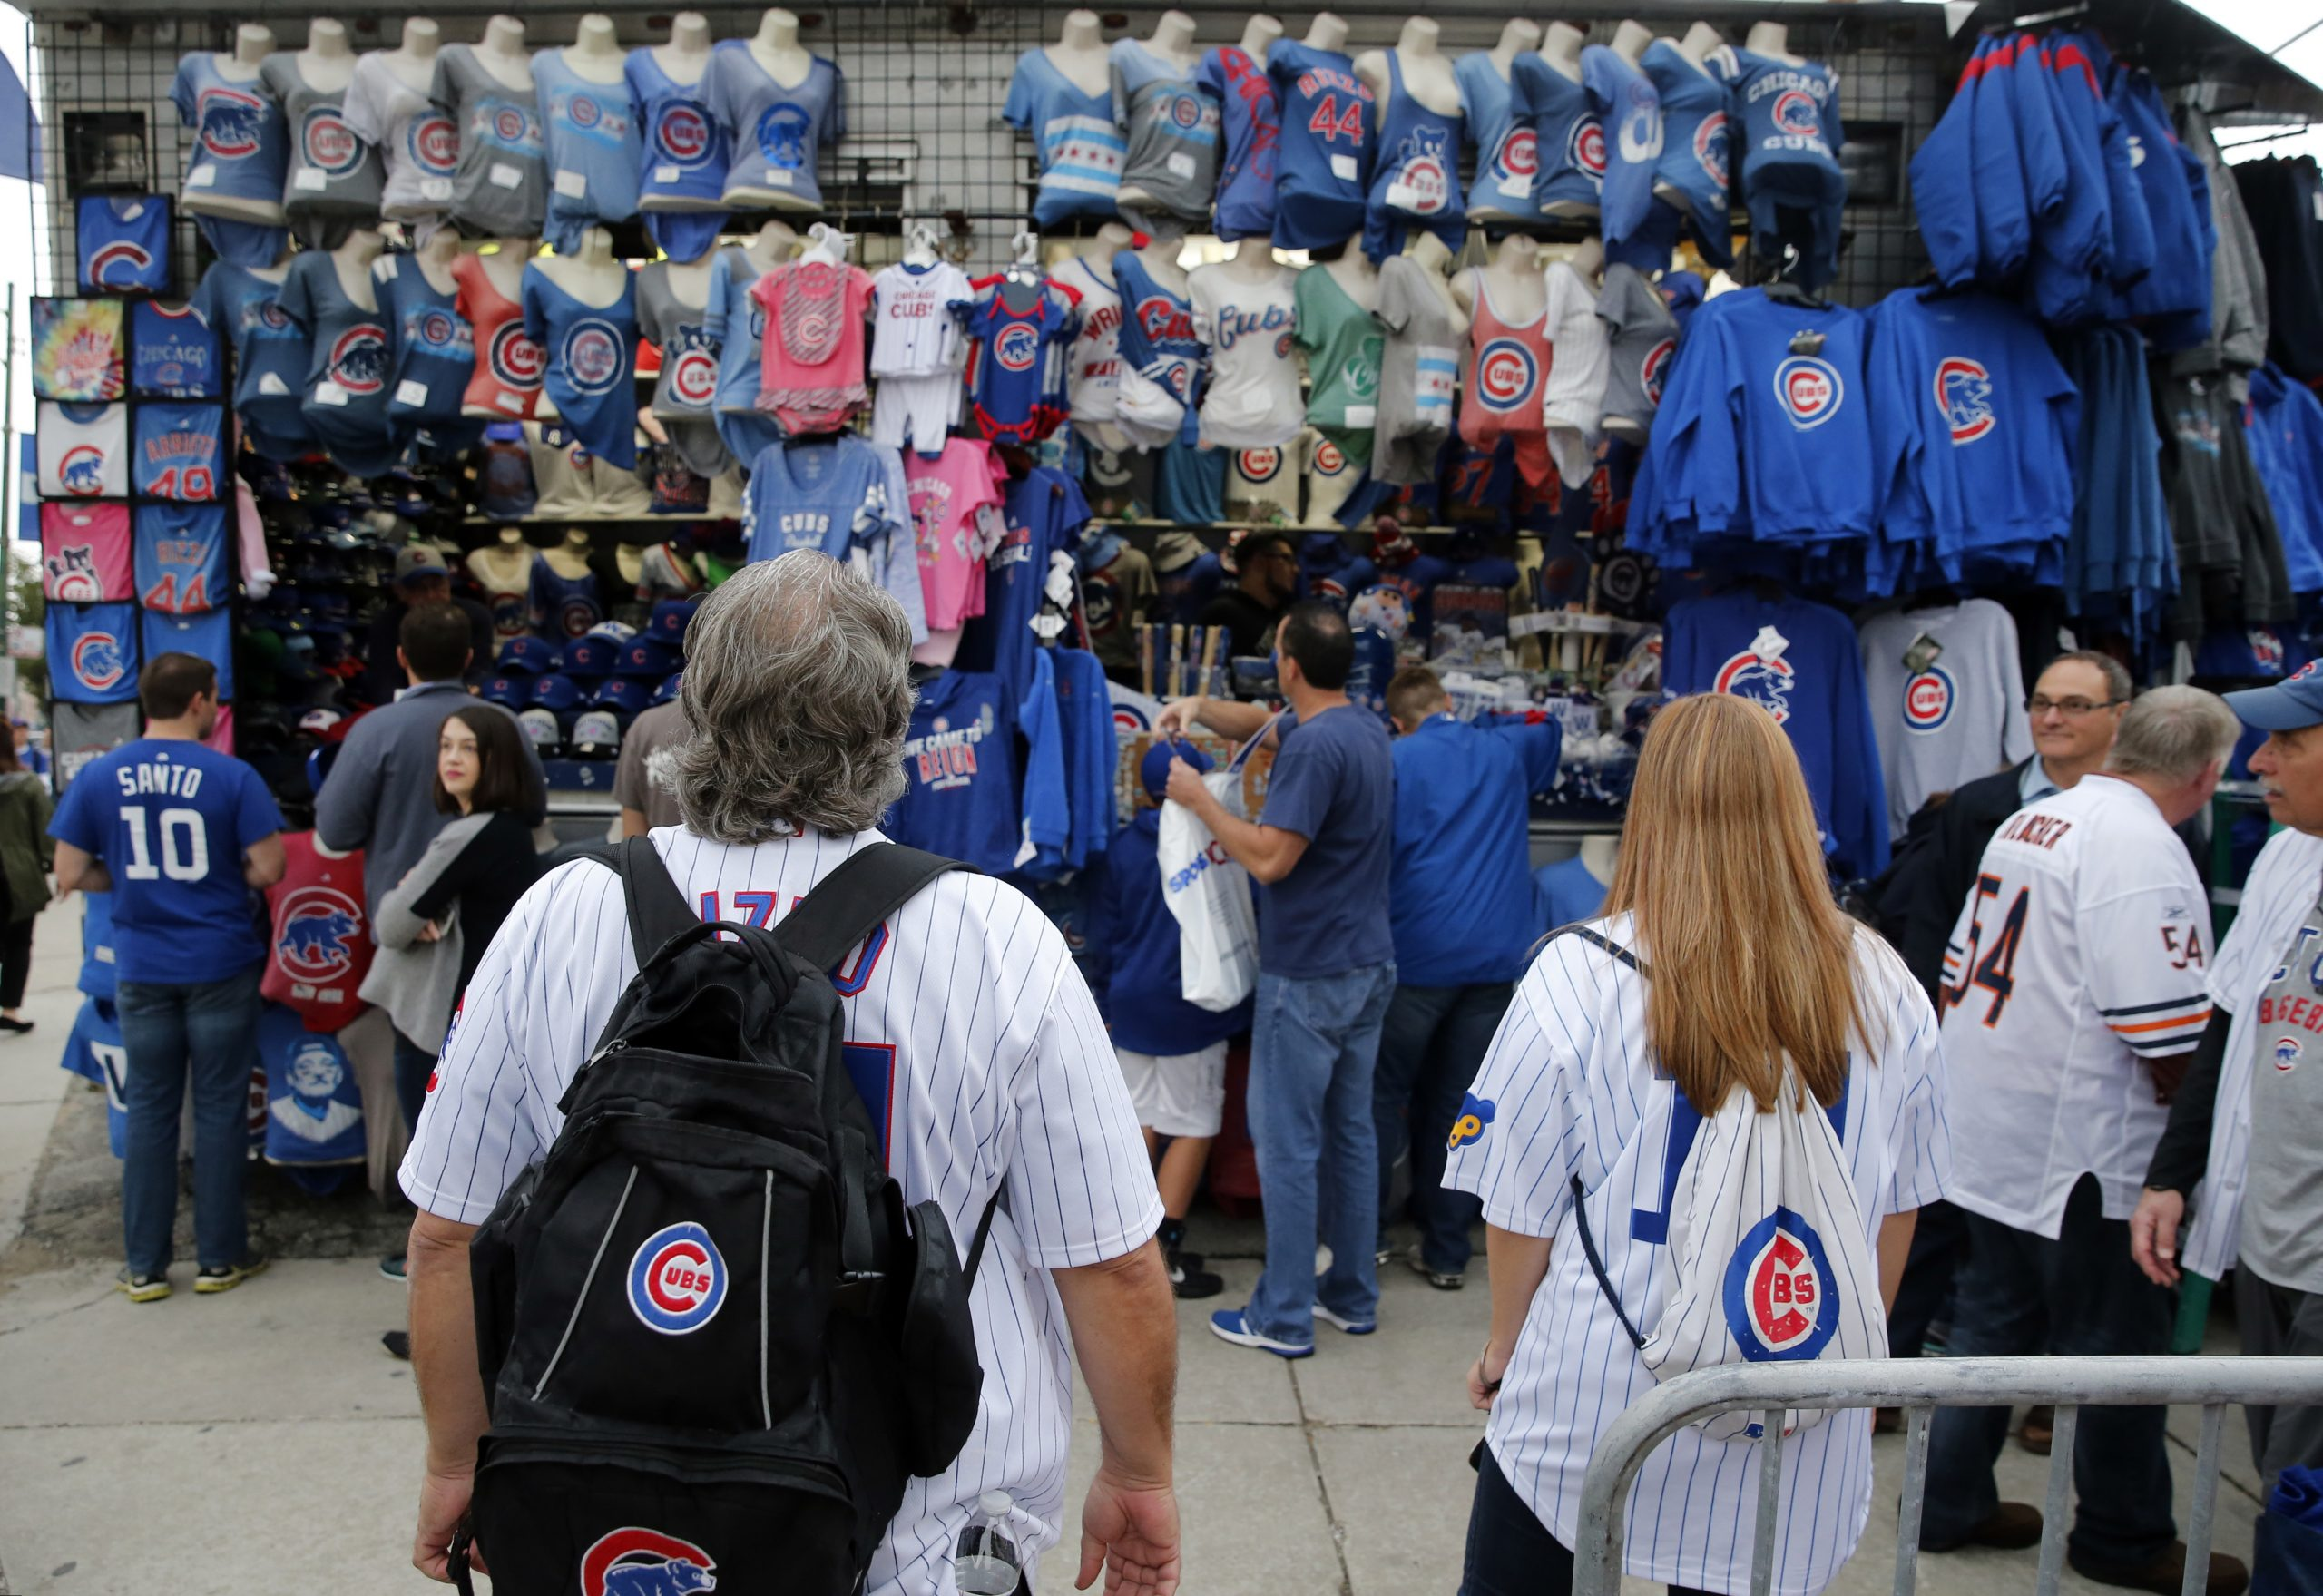 Fans look at Cubs merch outside Wrigley Field before game two of the NLCS.